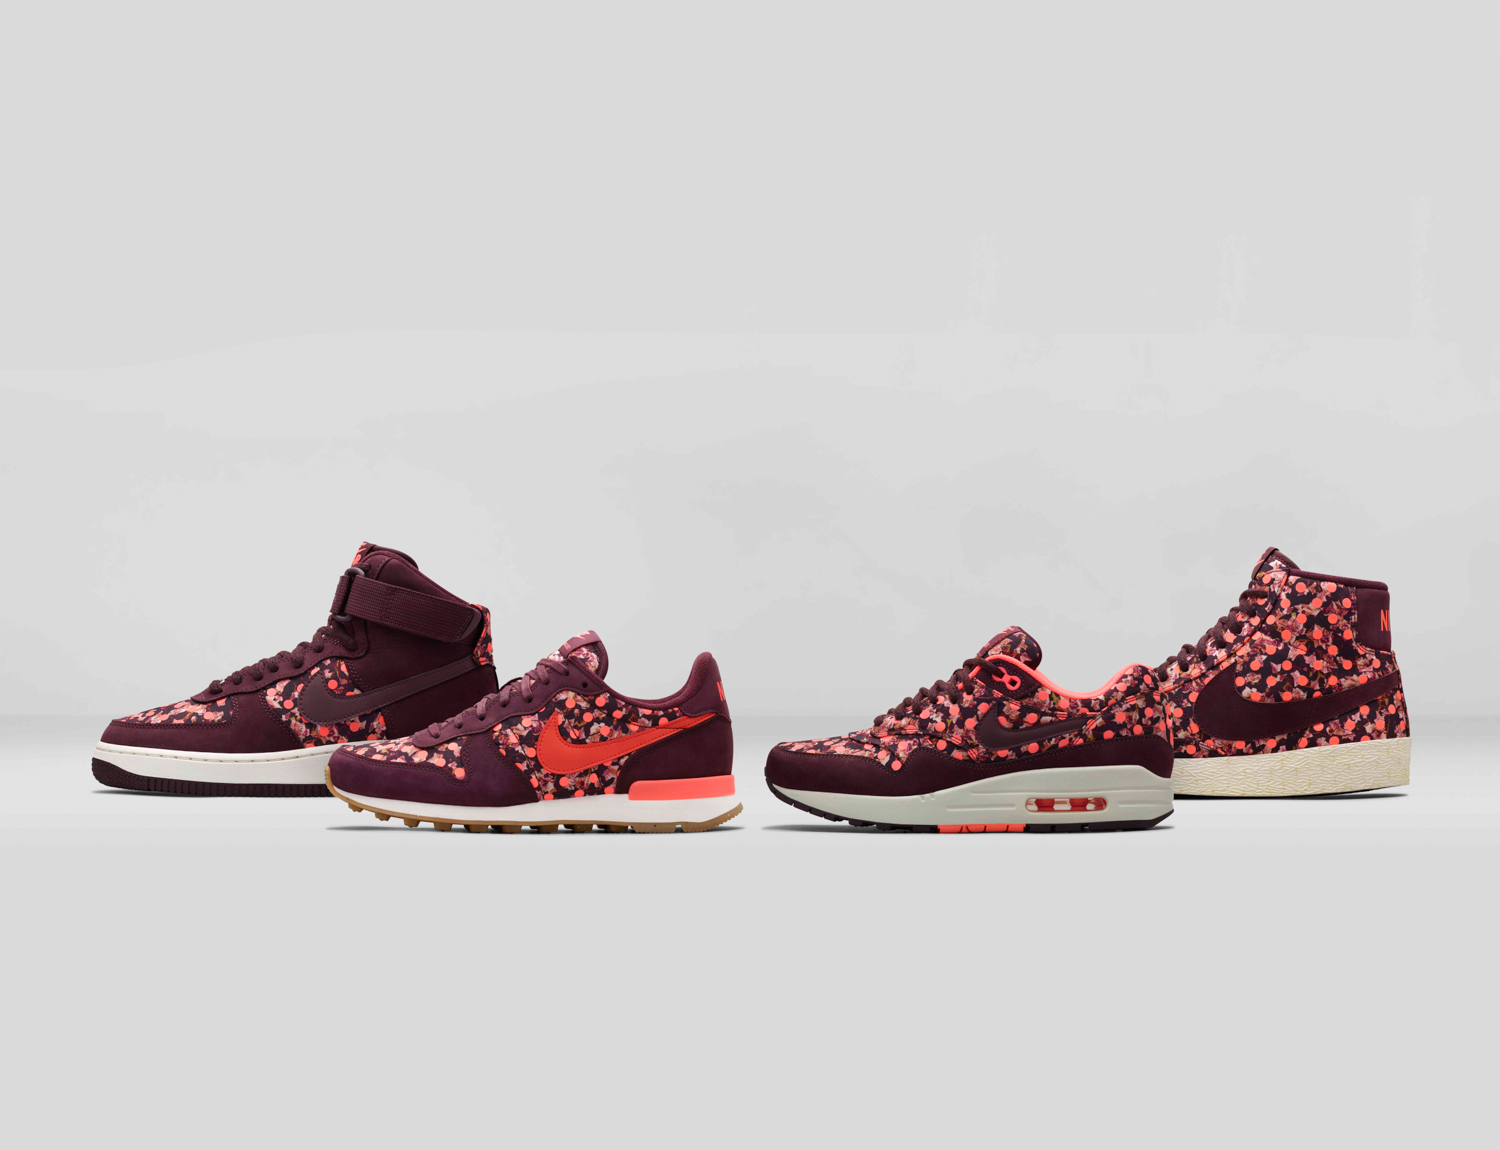 Nike x Liberty Holiday 2014 Collection 2